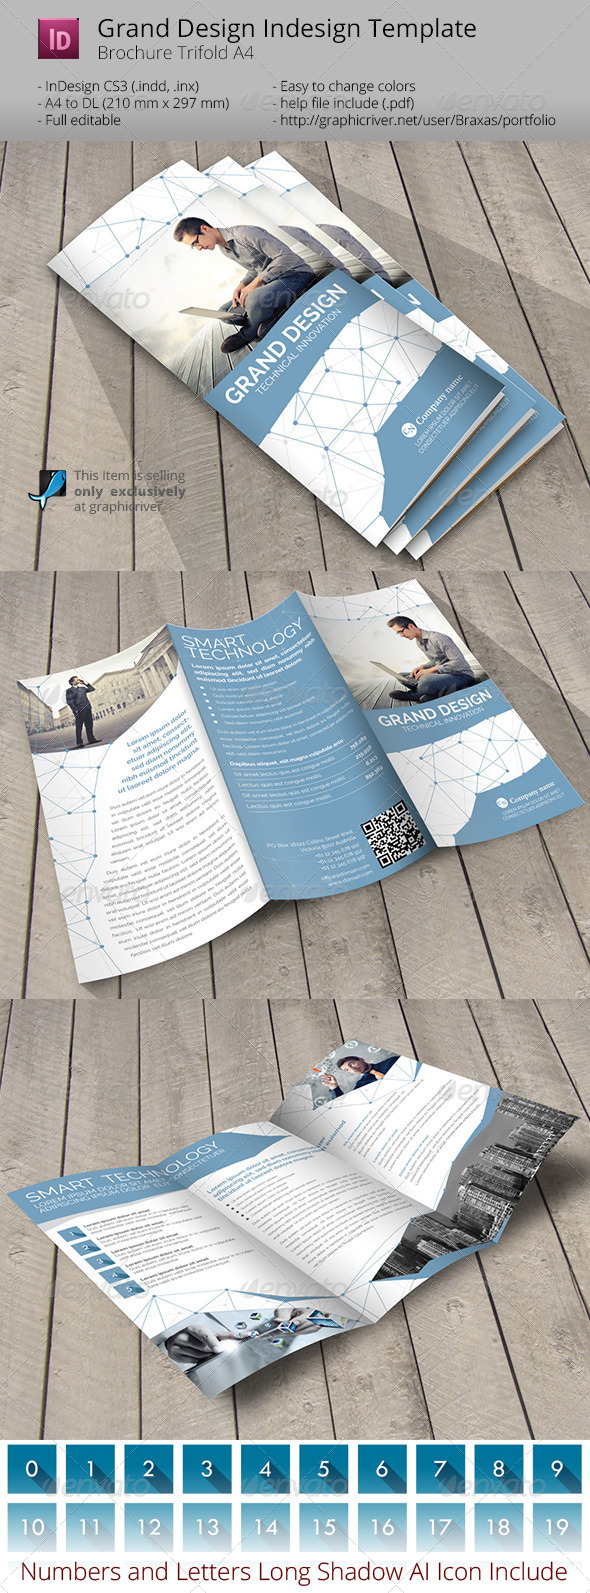 Grand Design Trifold Indesign Template - Informational Brochures